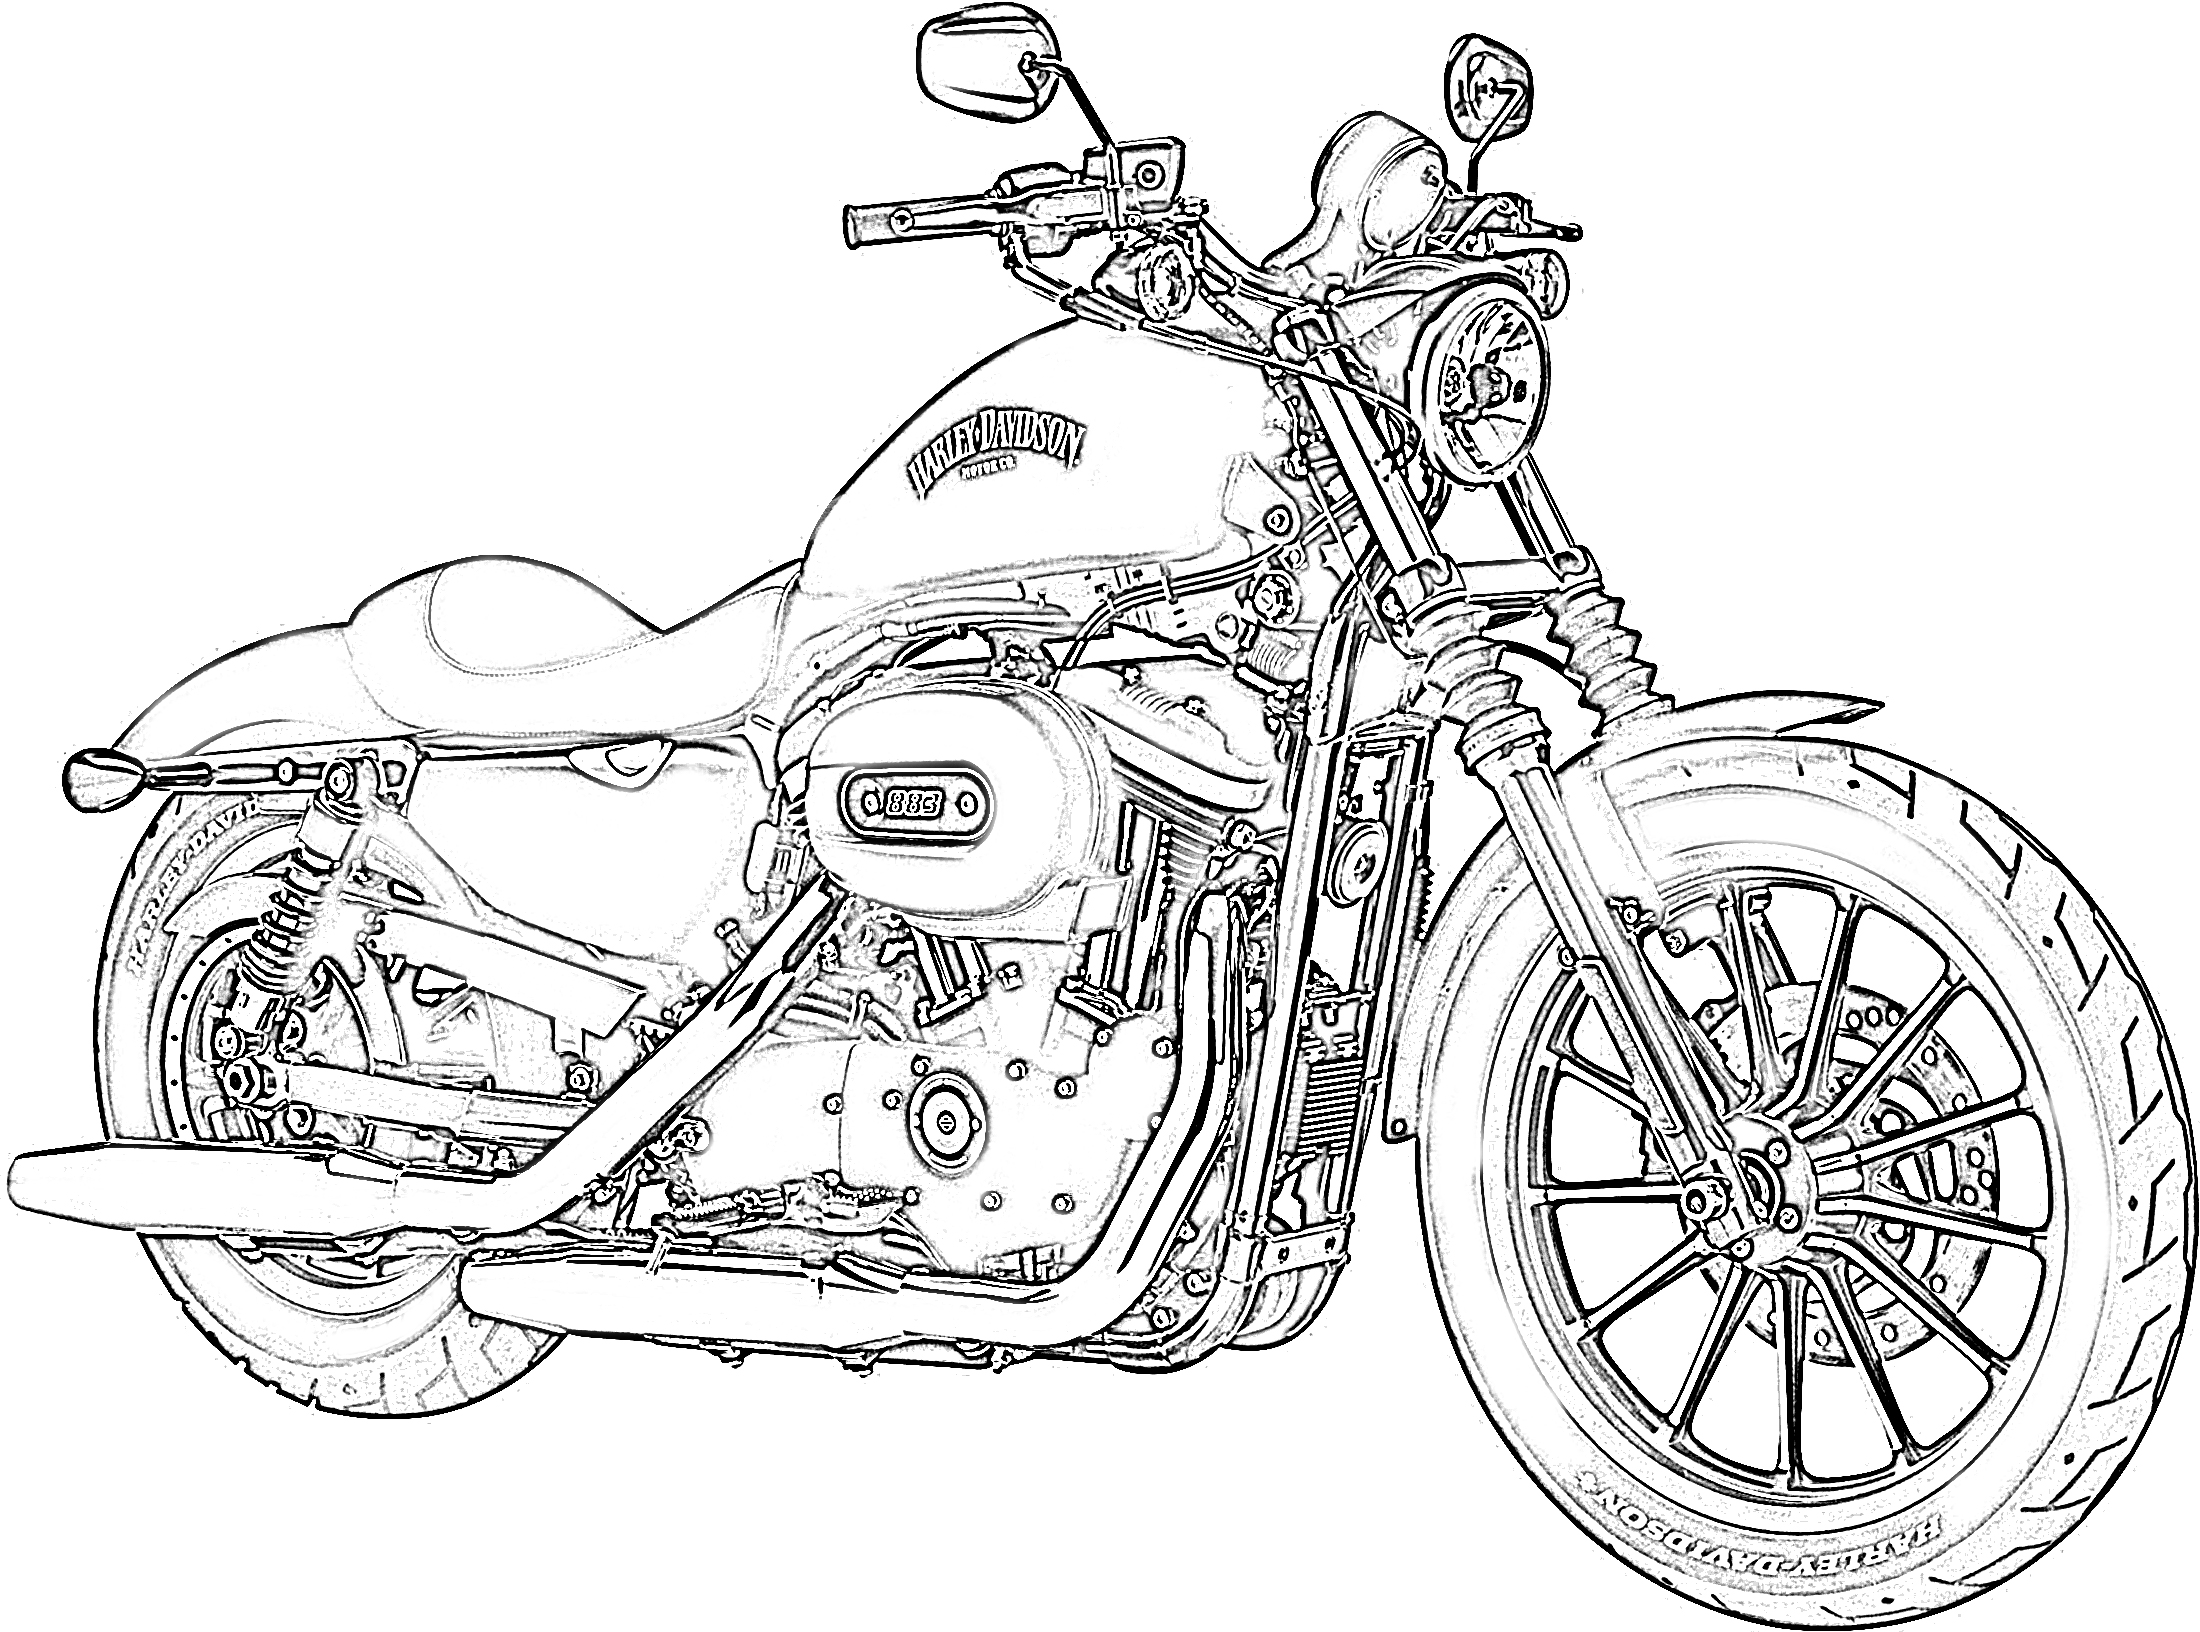 coloring pictures of motorcycles coloring pages motorcycle coloring pages free and printable coloring pictures motorcycles of